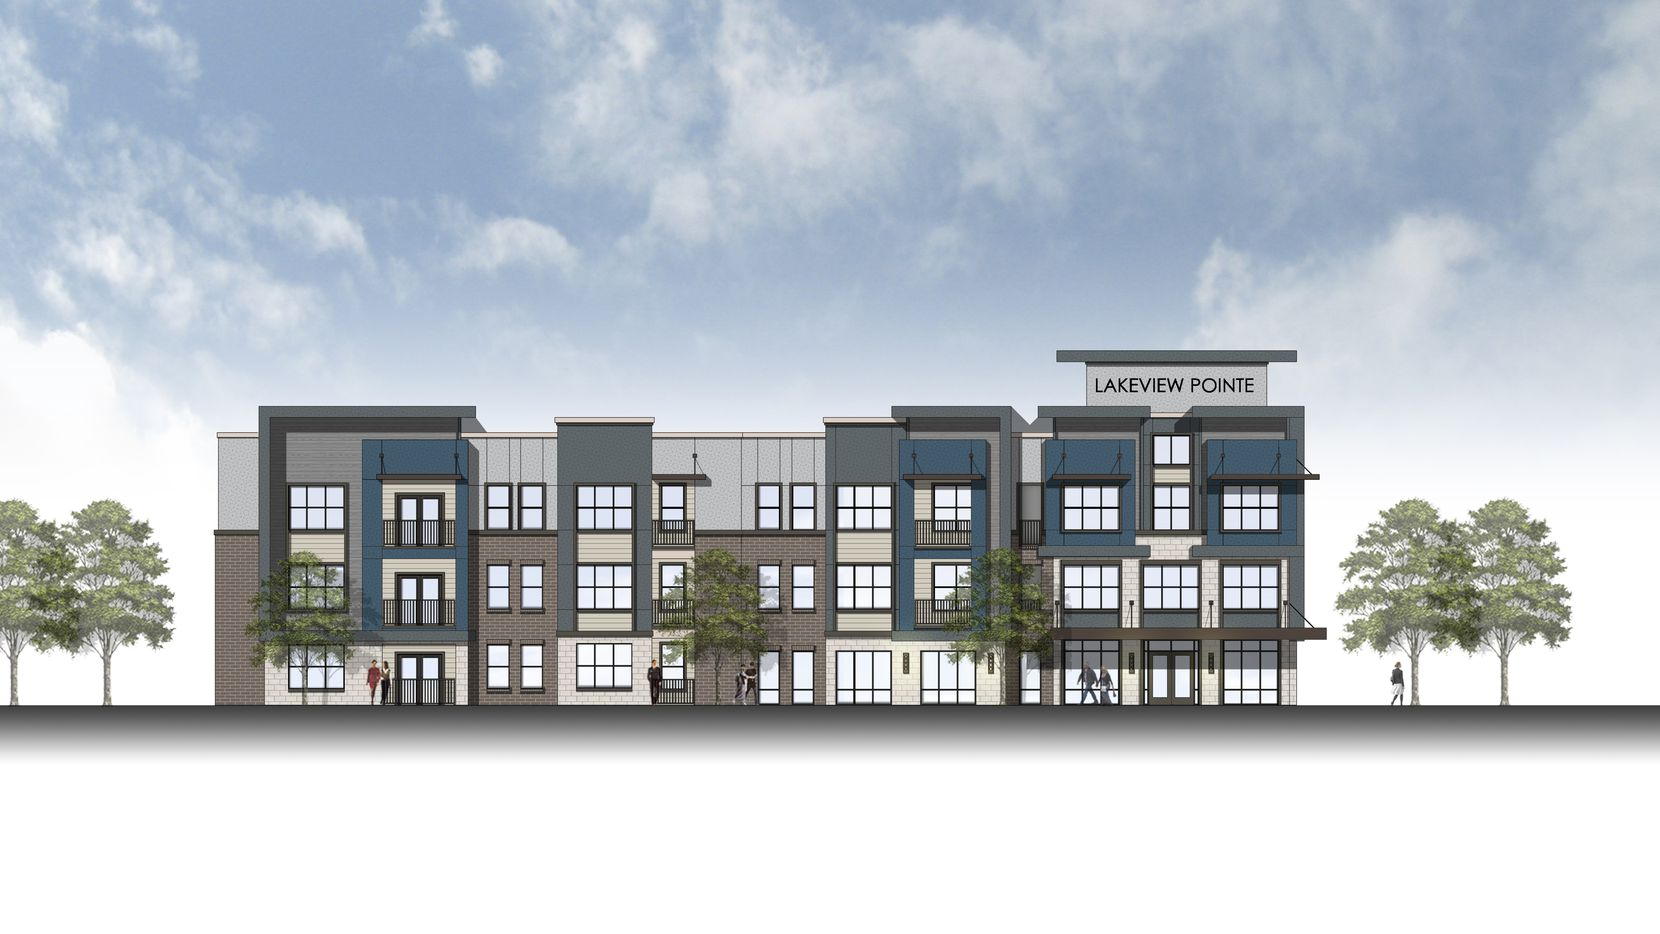 The Lakeview Pointe apartments will be built off I 30.